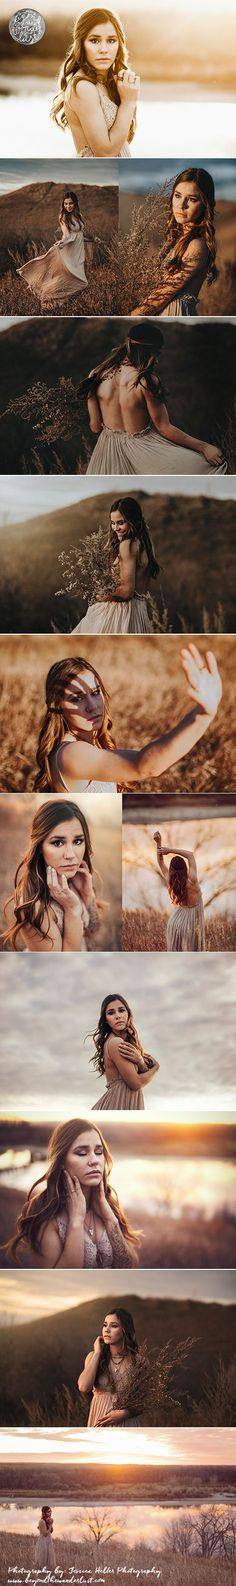 Senior picture ideas >> what to wear for senior pictures for girls